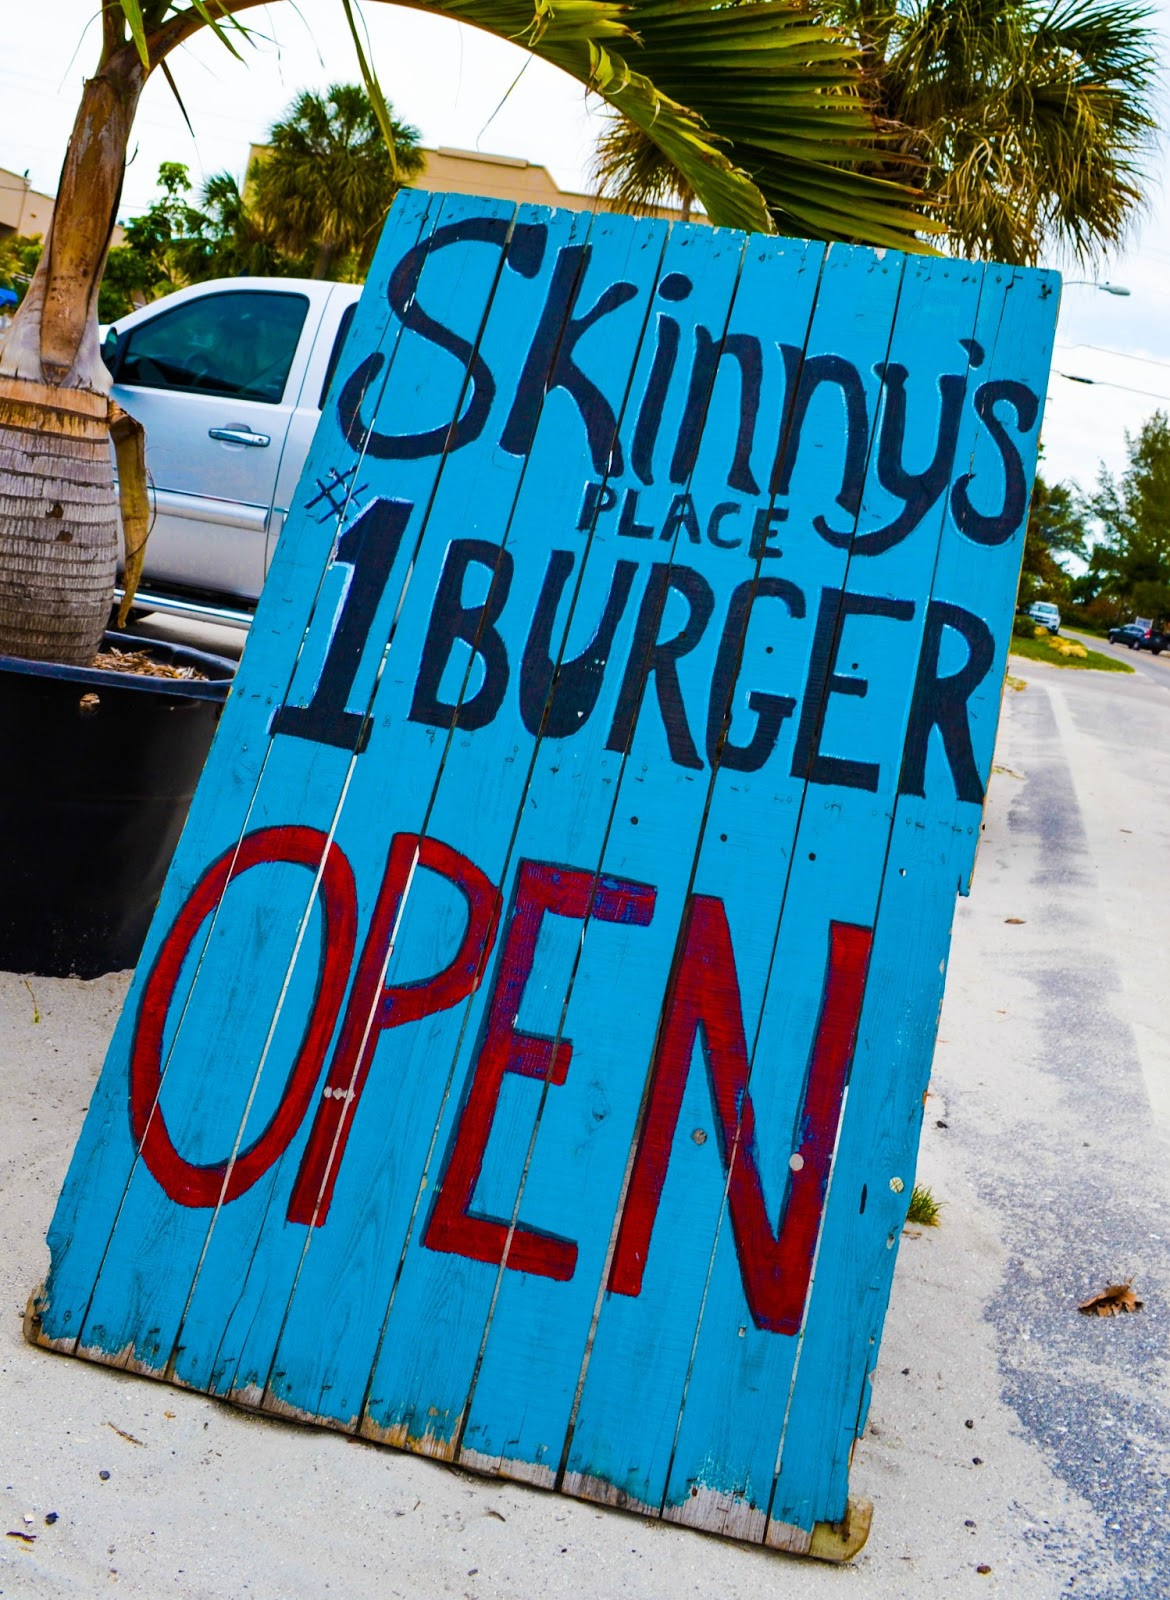 Jet Florida Mom And Pop Spots Bikinis Burgers And Beer